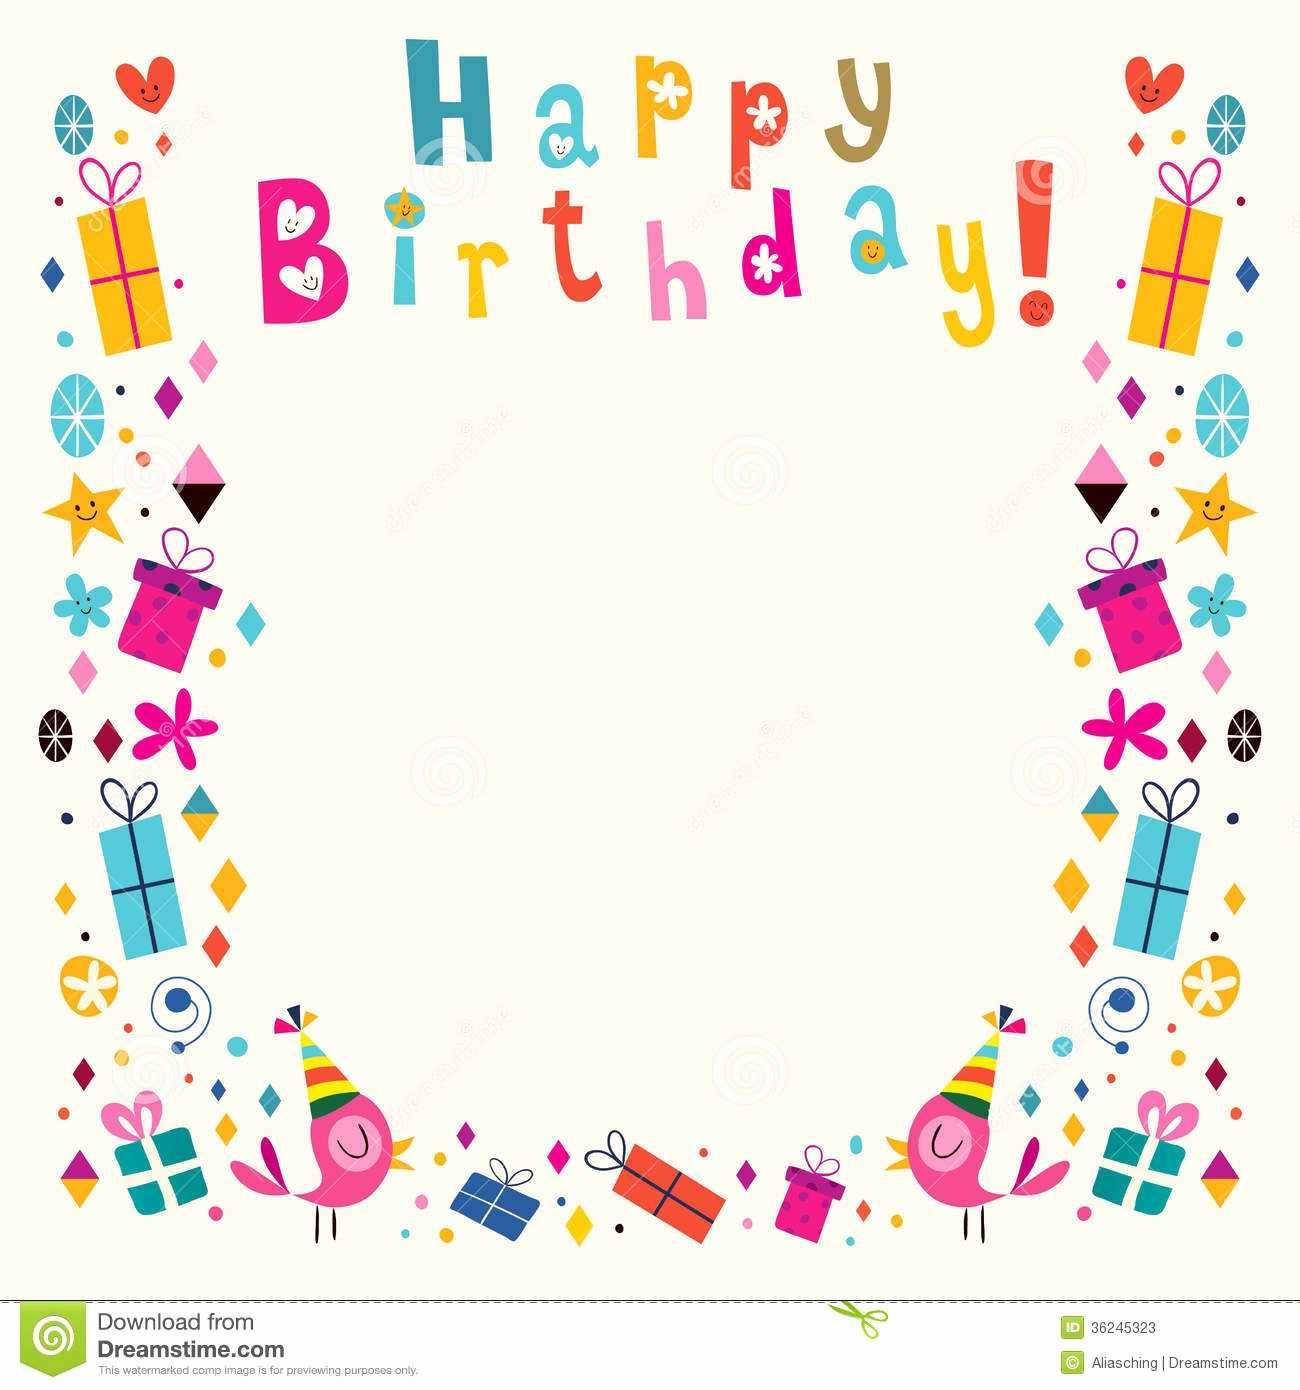 Boarder clipart happy birthday. Border images fresh borders